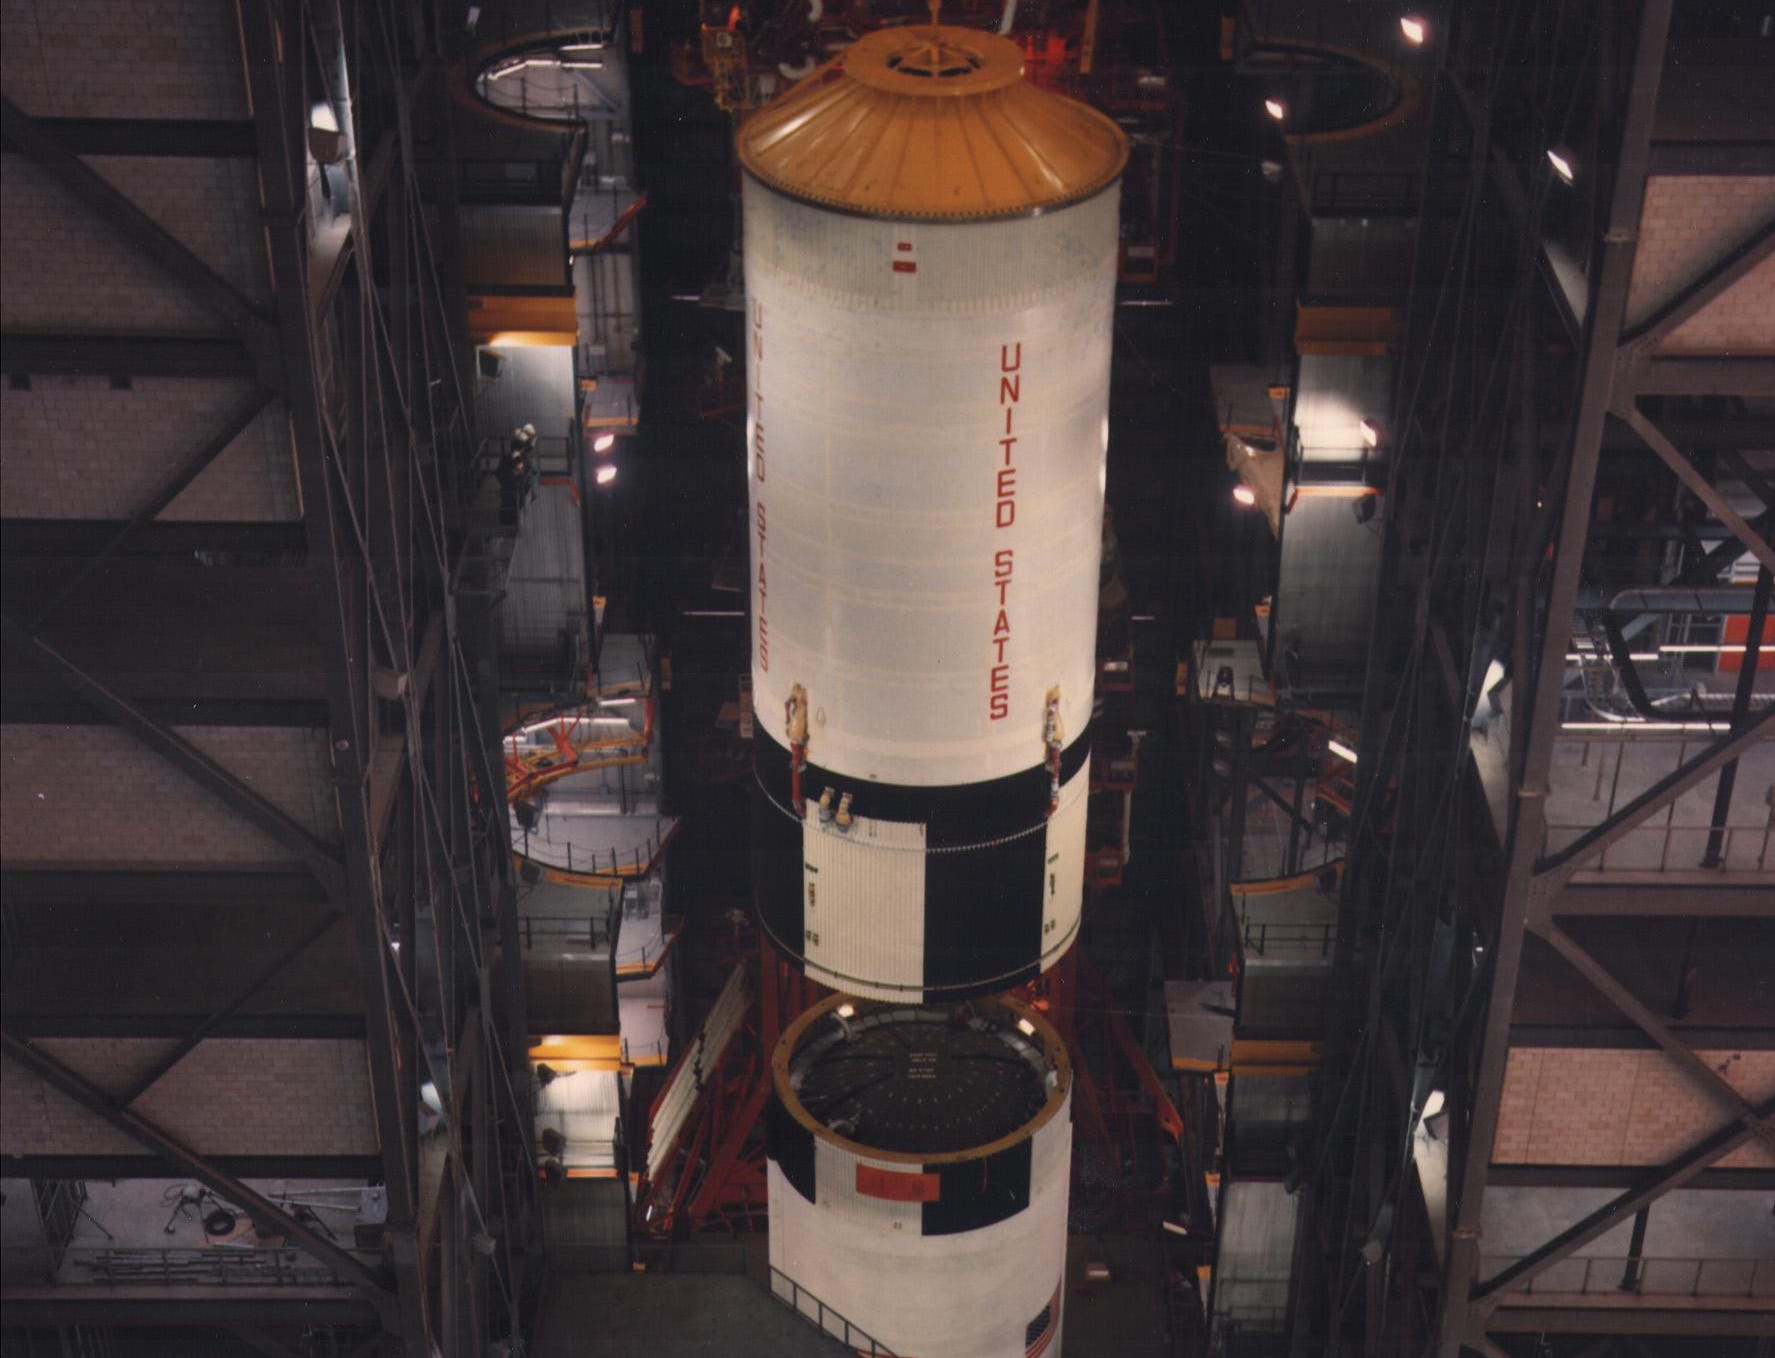 This image, taken on March 4, 1969, shows the stacking of the S-II stage for the Saturn 506 in the Kennedy Space Center's Vehicle Assembly Building in preparation for the Apollo 11 launch. On July 16, 1969, the Apollo 11 mission lifted off for humanity's first visit to another celestial body.